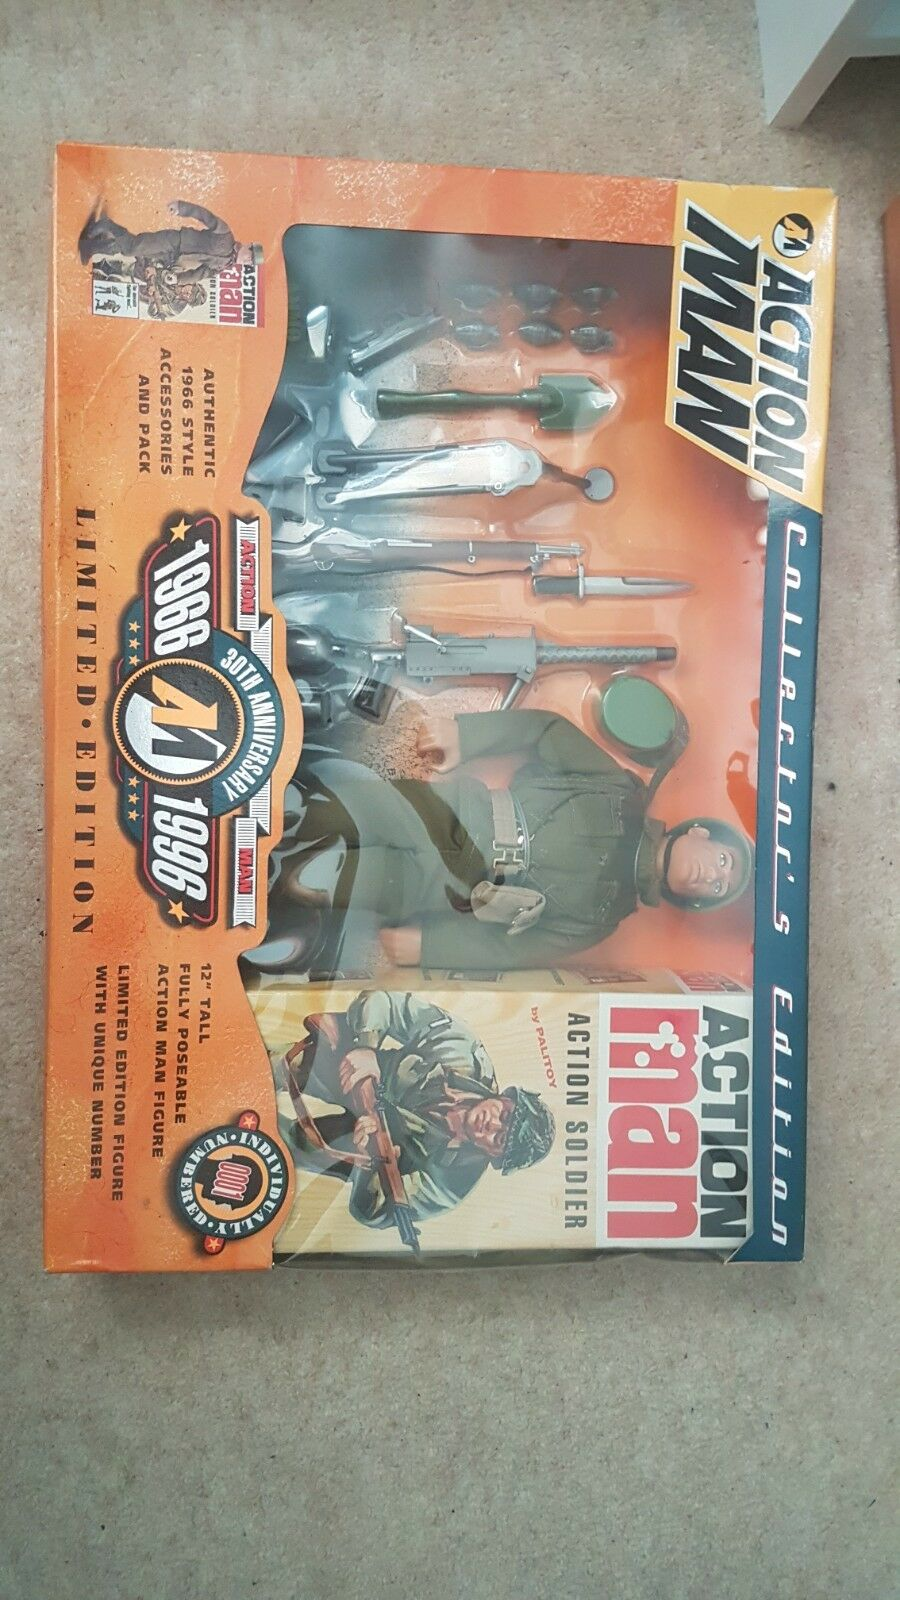 Action man 30th Anniversary Limited Edition